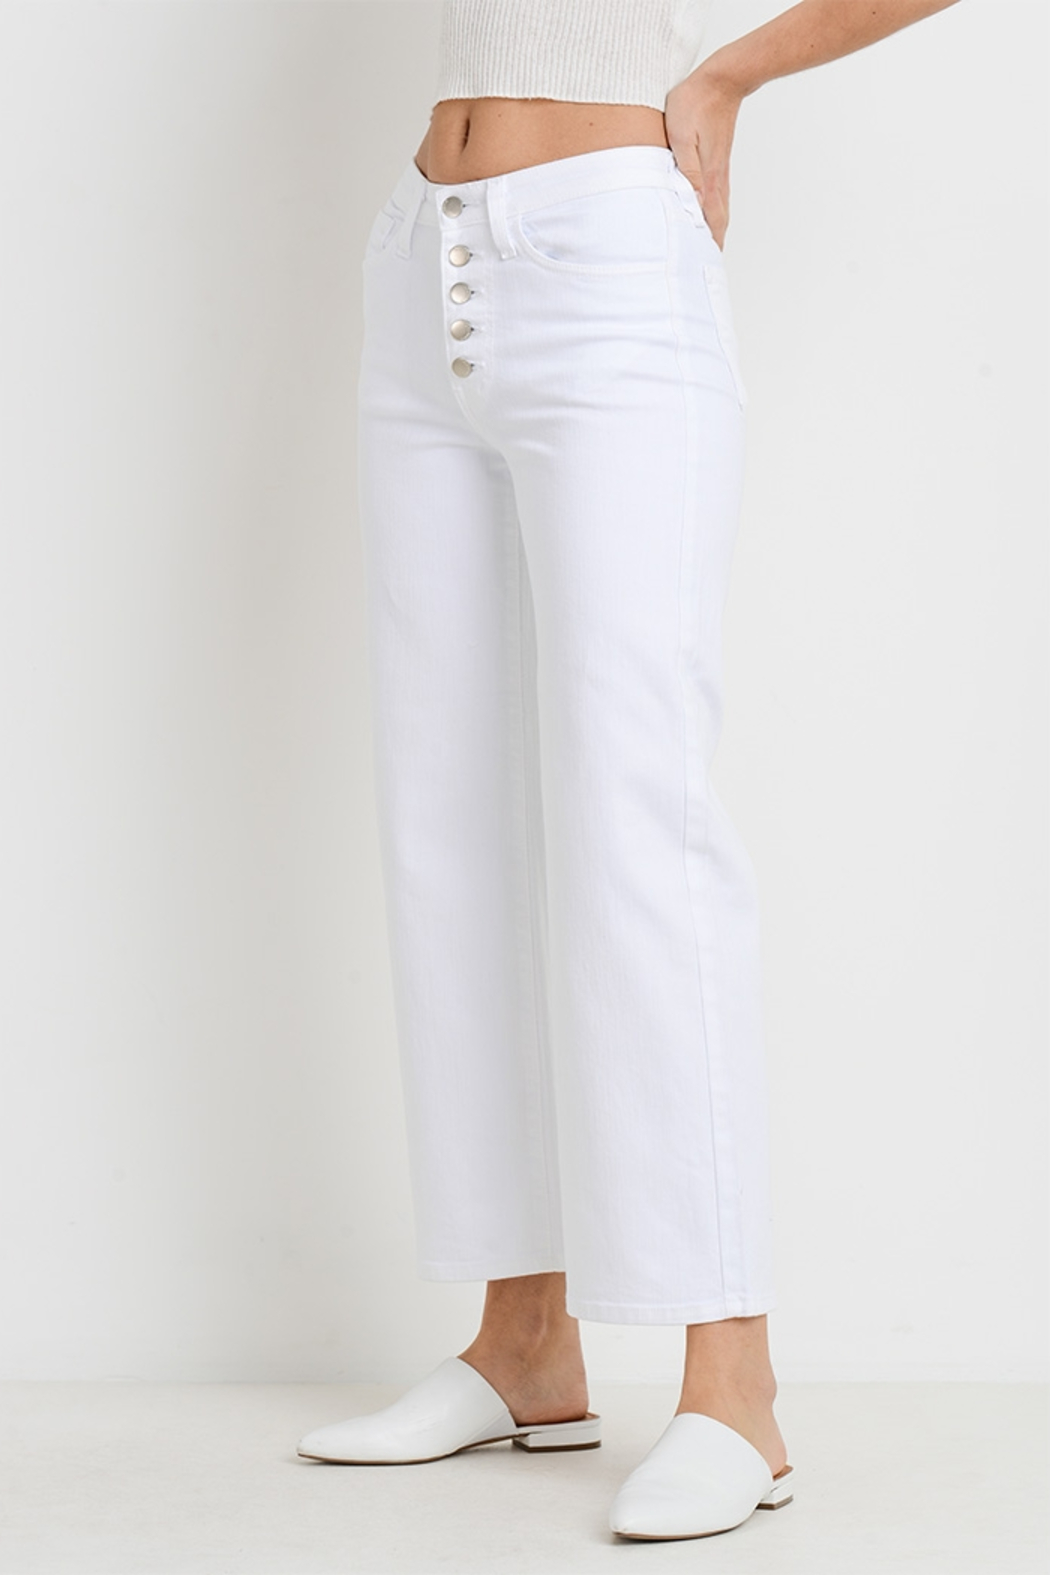 L.T.J Genoa Button Fly Wide Leg Jeans - Front Full Image